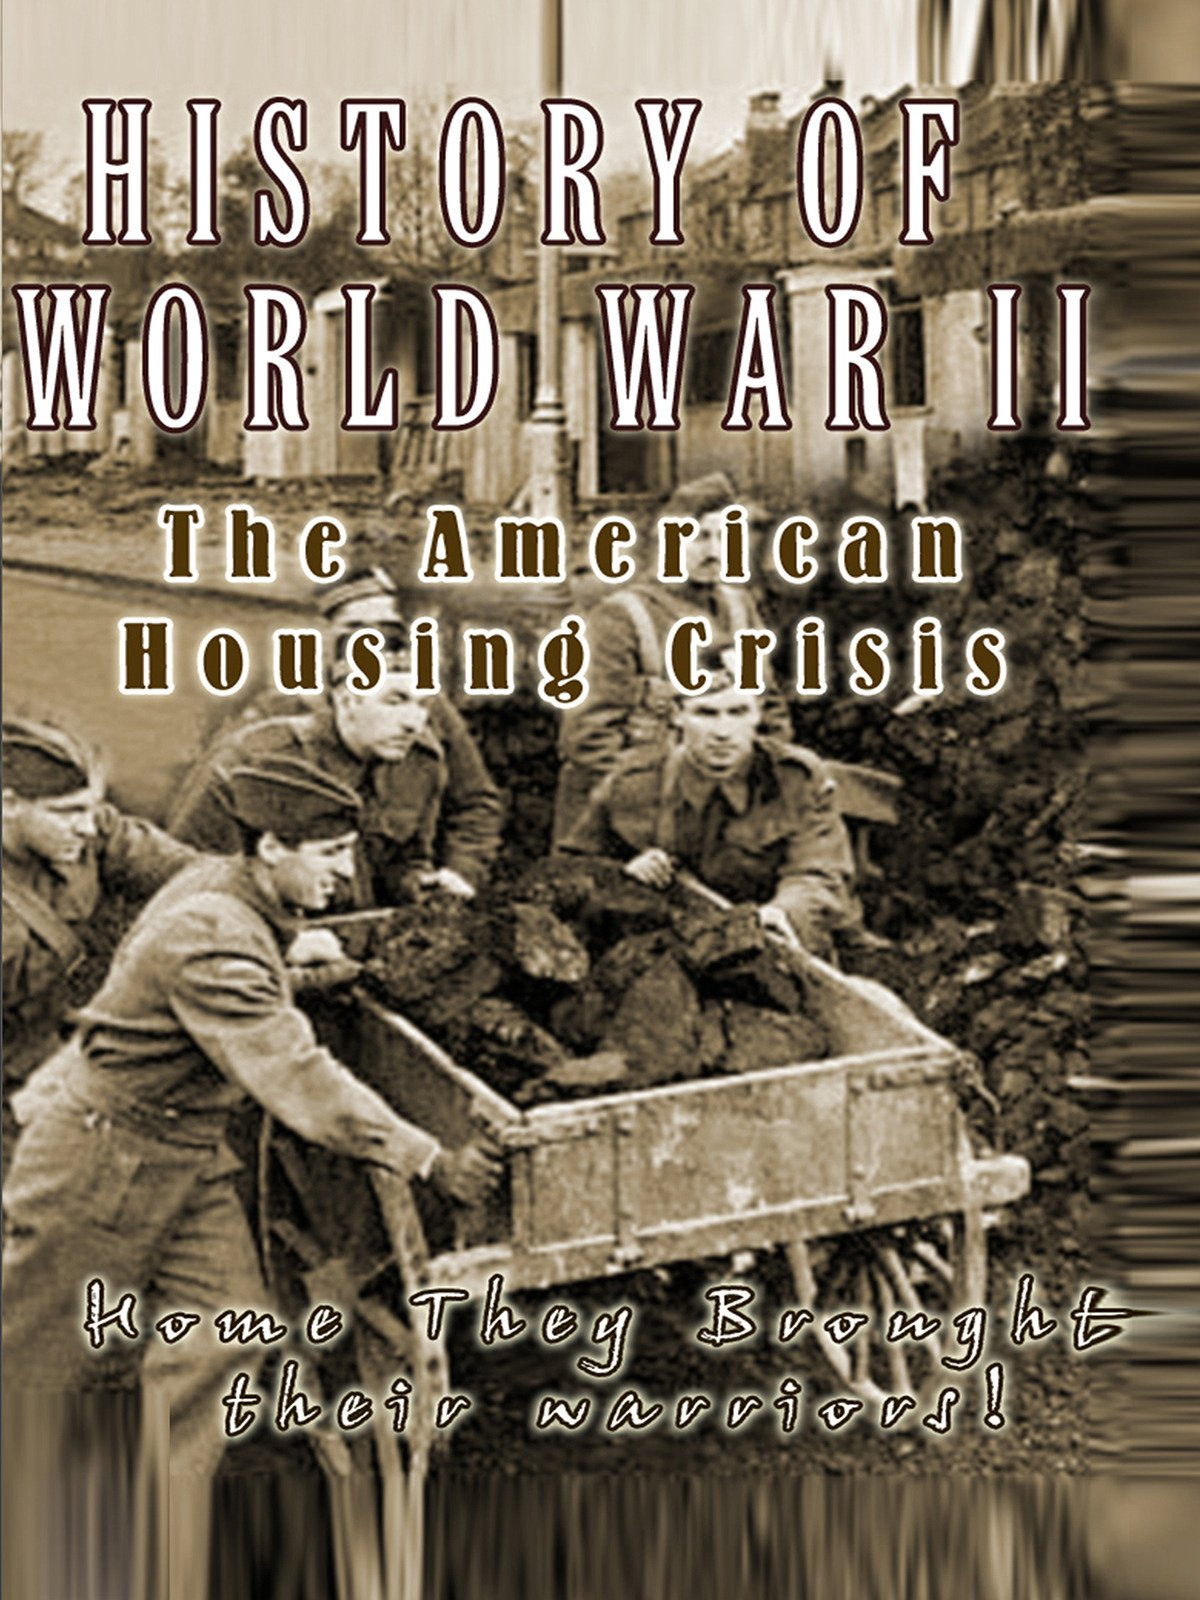 History of World War II - The American Housing Crisis - Home they brought their warriors! on Amazon Prime Video UK